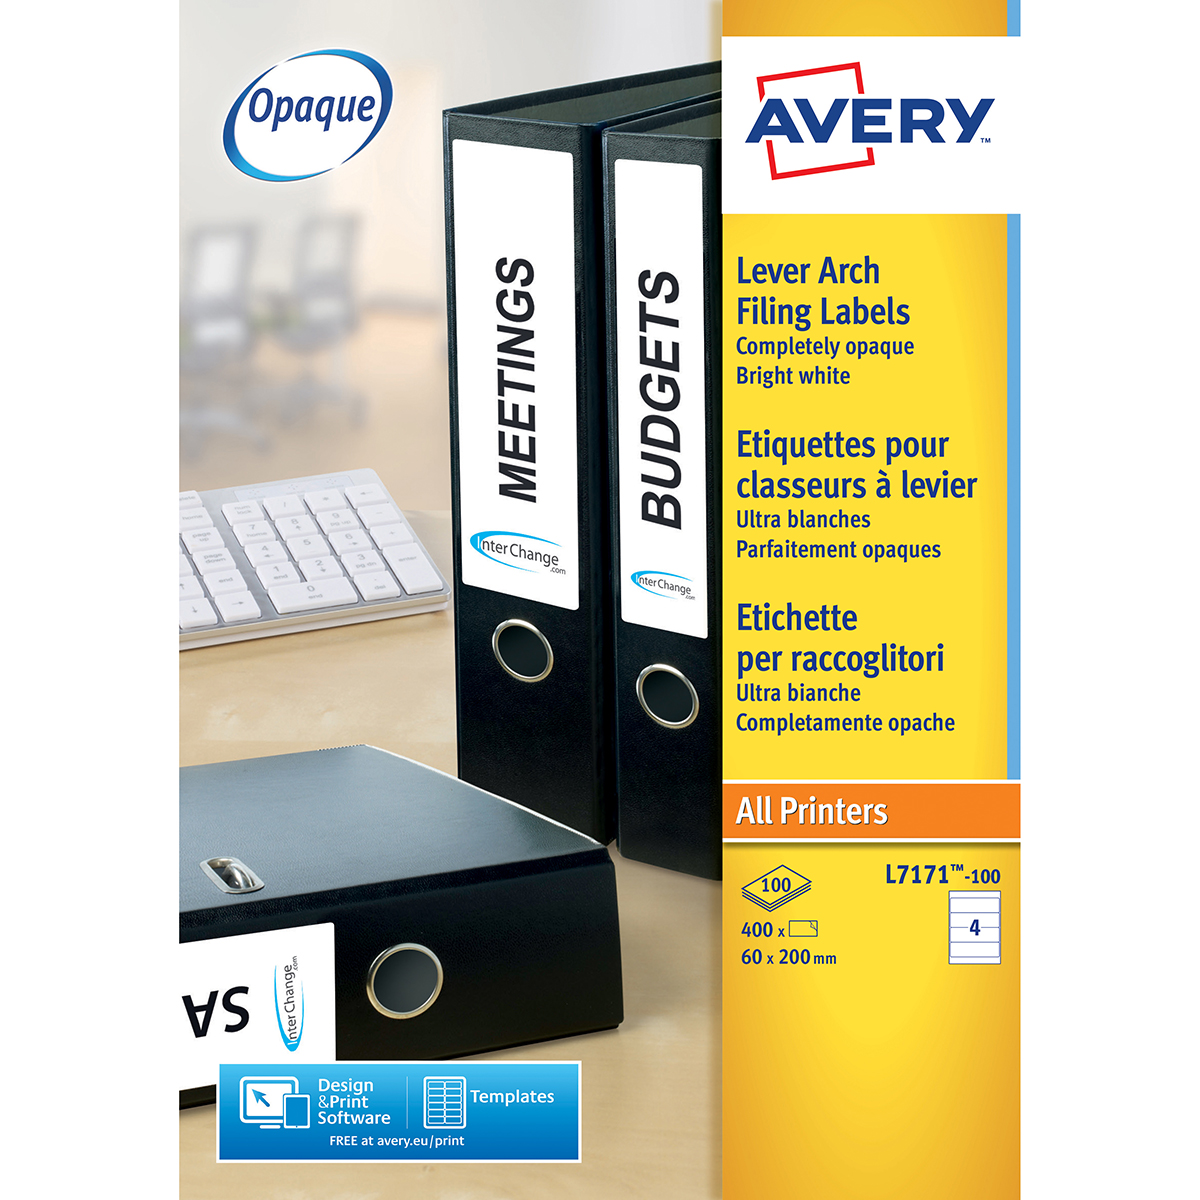 Avery L7171-100 Filing Labels 100 sheets - 4 Labels per Sheet